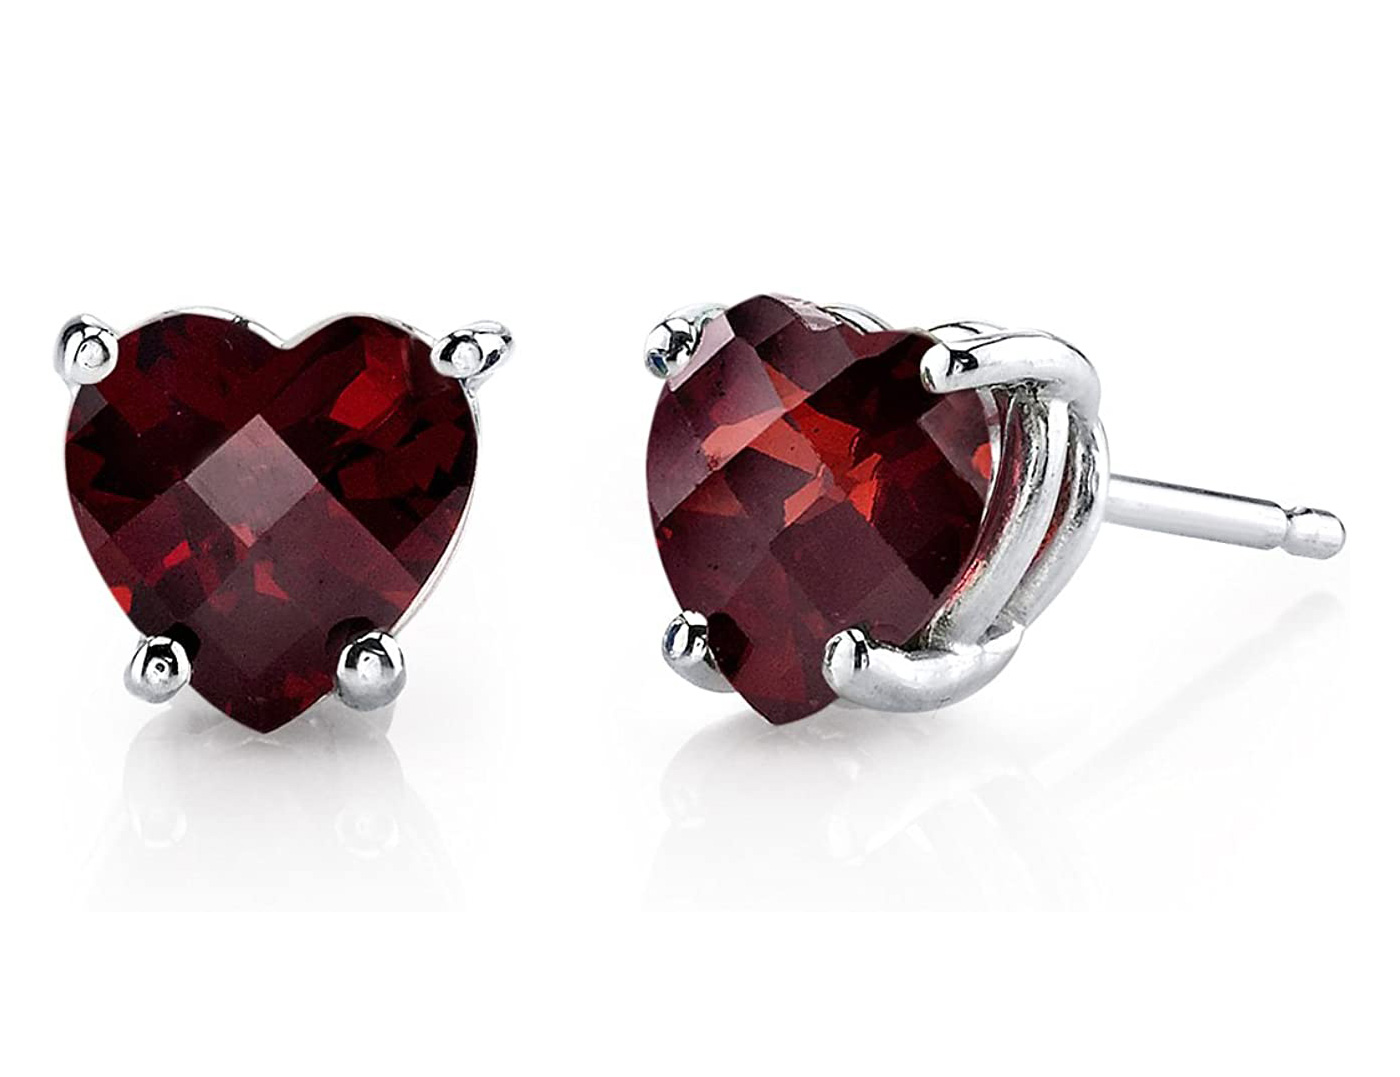 Peora Garnet Heart Stud Earrings for Women in 14 Karat White Gold, Classic Solitaire Studs, 6mm, 1.75 Carats total, Friction Back